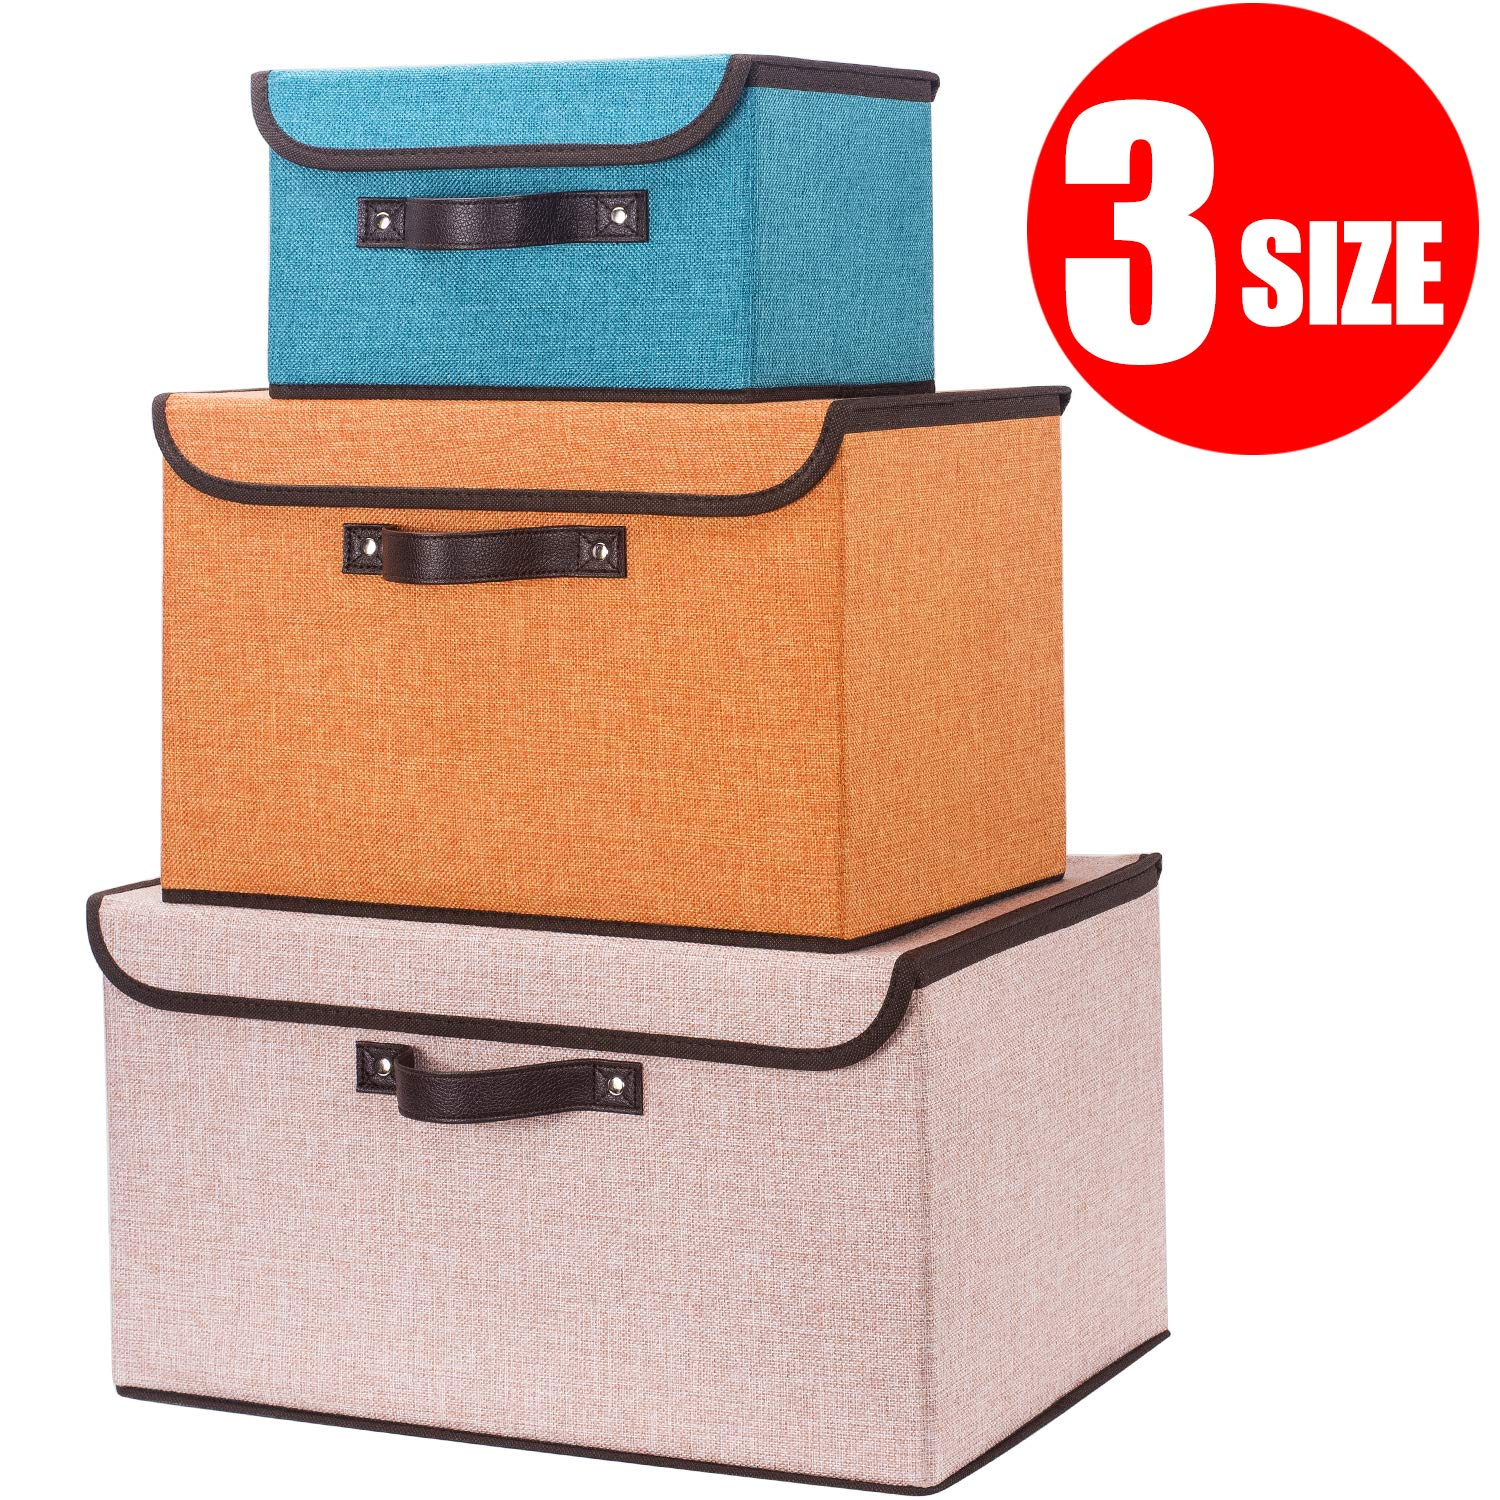 Astounding Senbowe Storage Bins Set Of 3 Size Foldable Storage Cubes Box With Lids And Handles Collapsible Storage Basket Containers Organizer With Linen Creativecarmelina Interior Chair Design Creativecarmelinacom